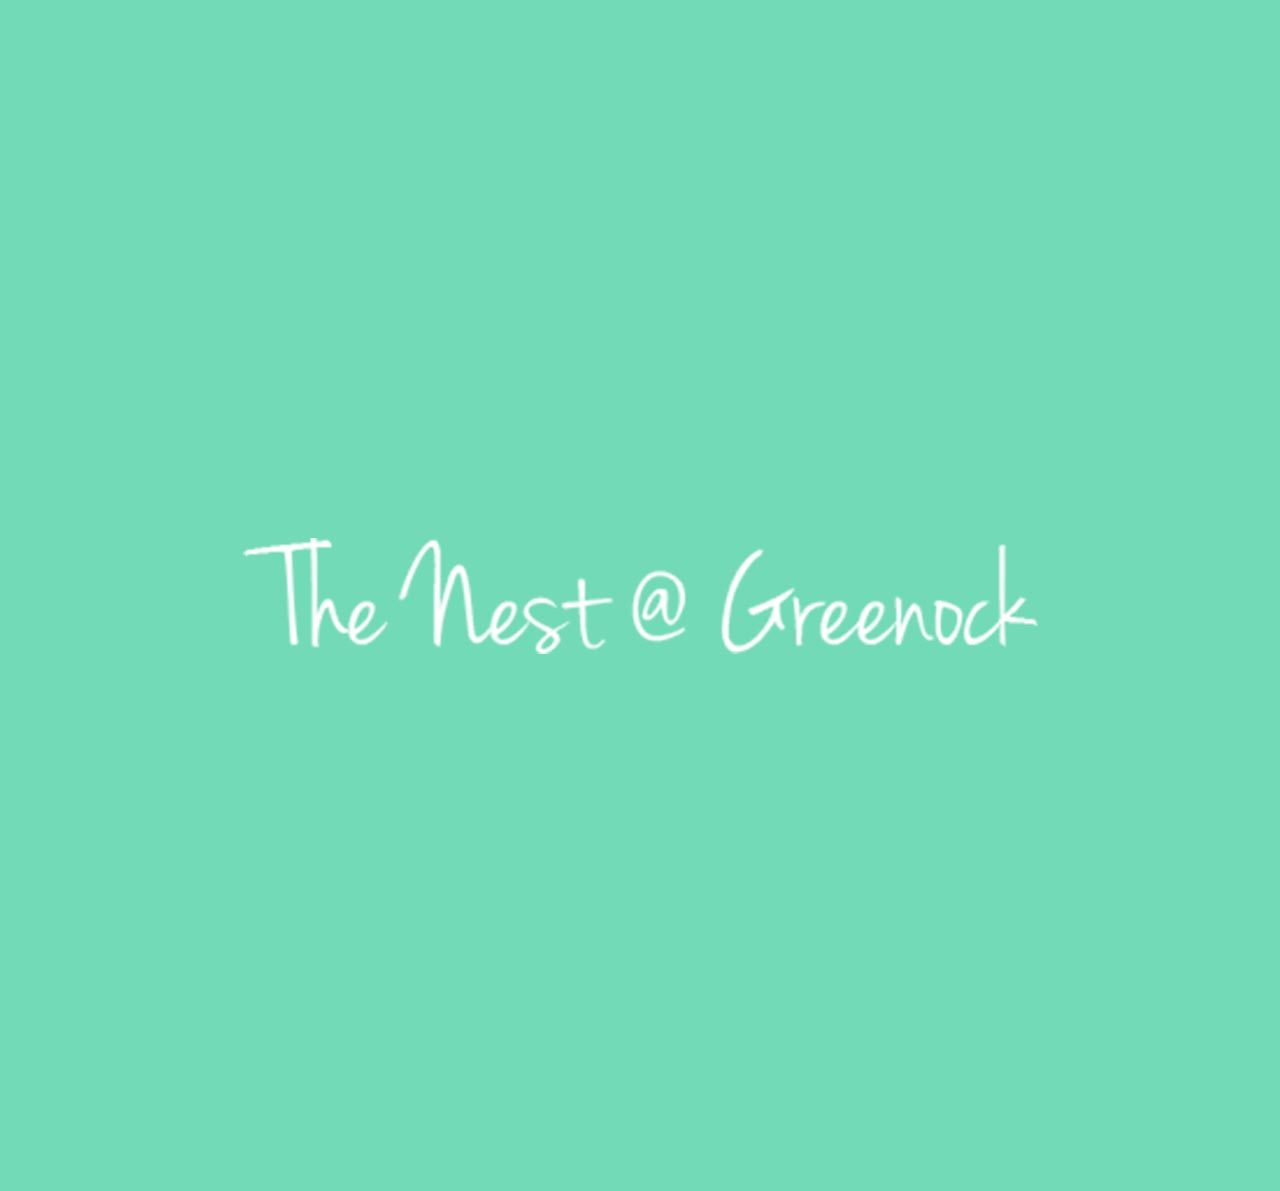 The Nest at Greenock